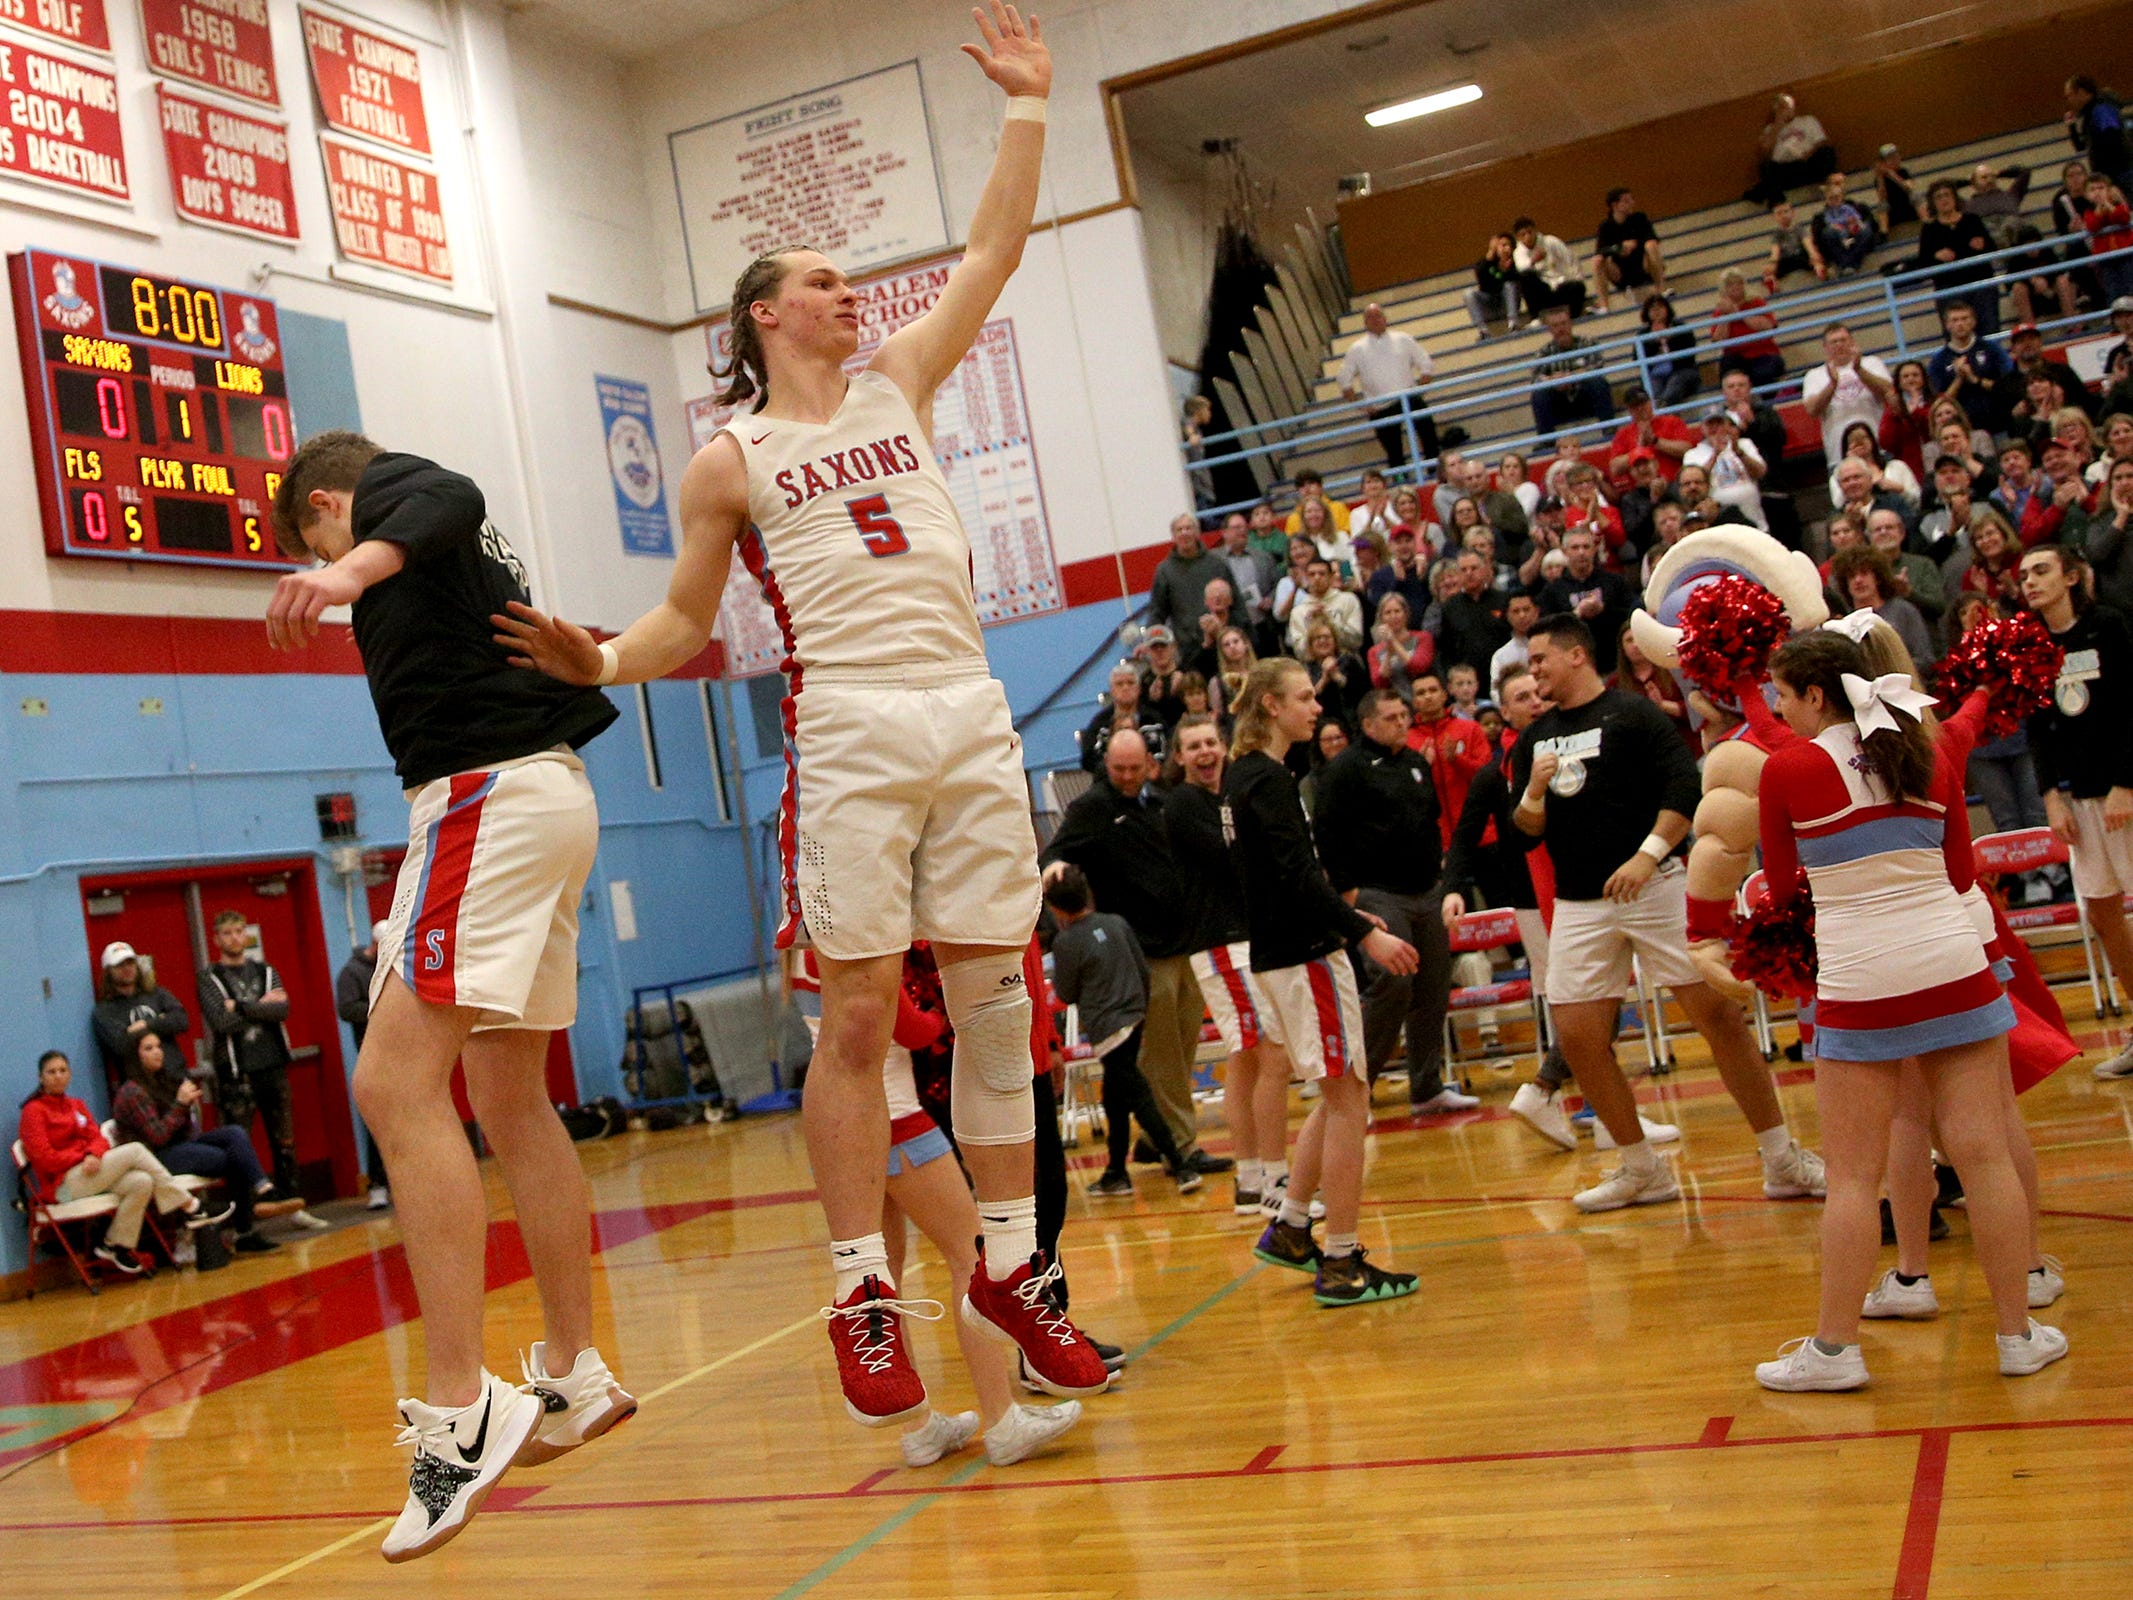 South Salem's Ryan Brown (5) is introduced during the South Salem vs. West Linn boys basketball OSAA playoff game at South Salem High School on Friday, March 1, 2019.